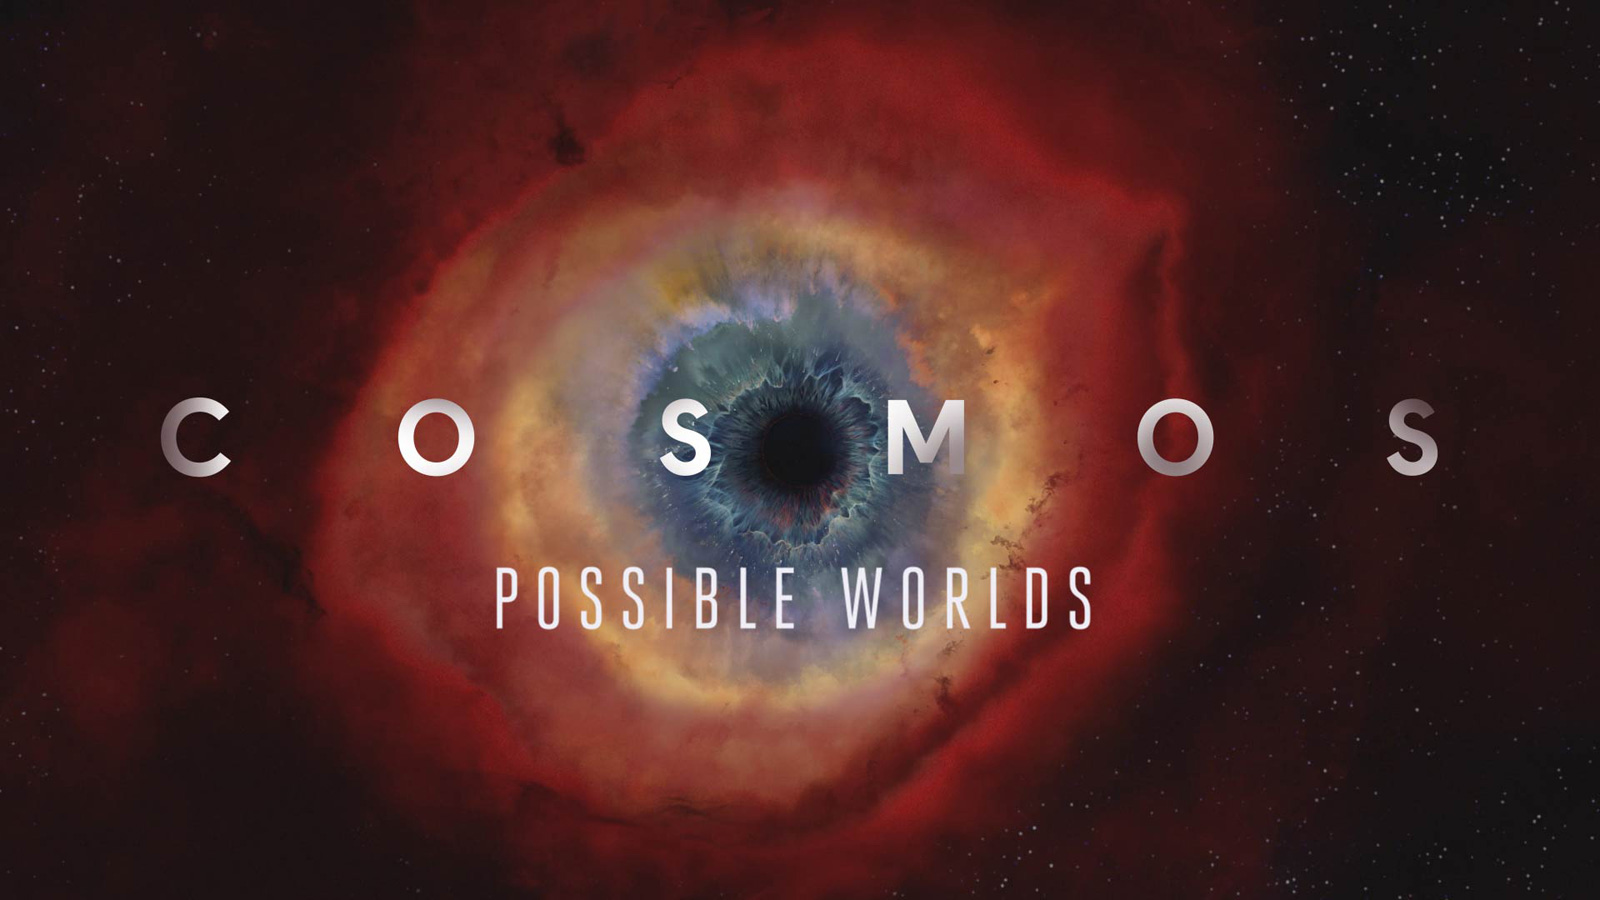 cosmos-possible-worlds.jpg